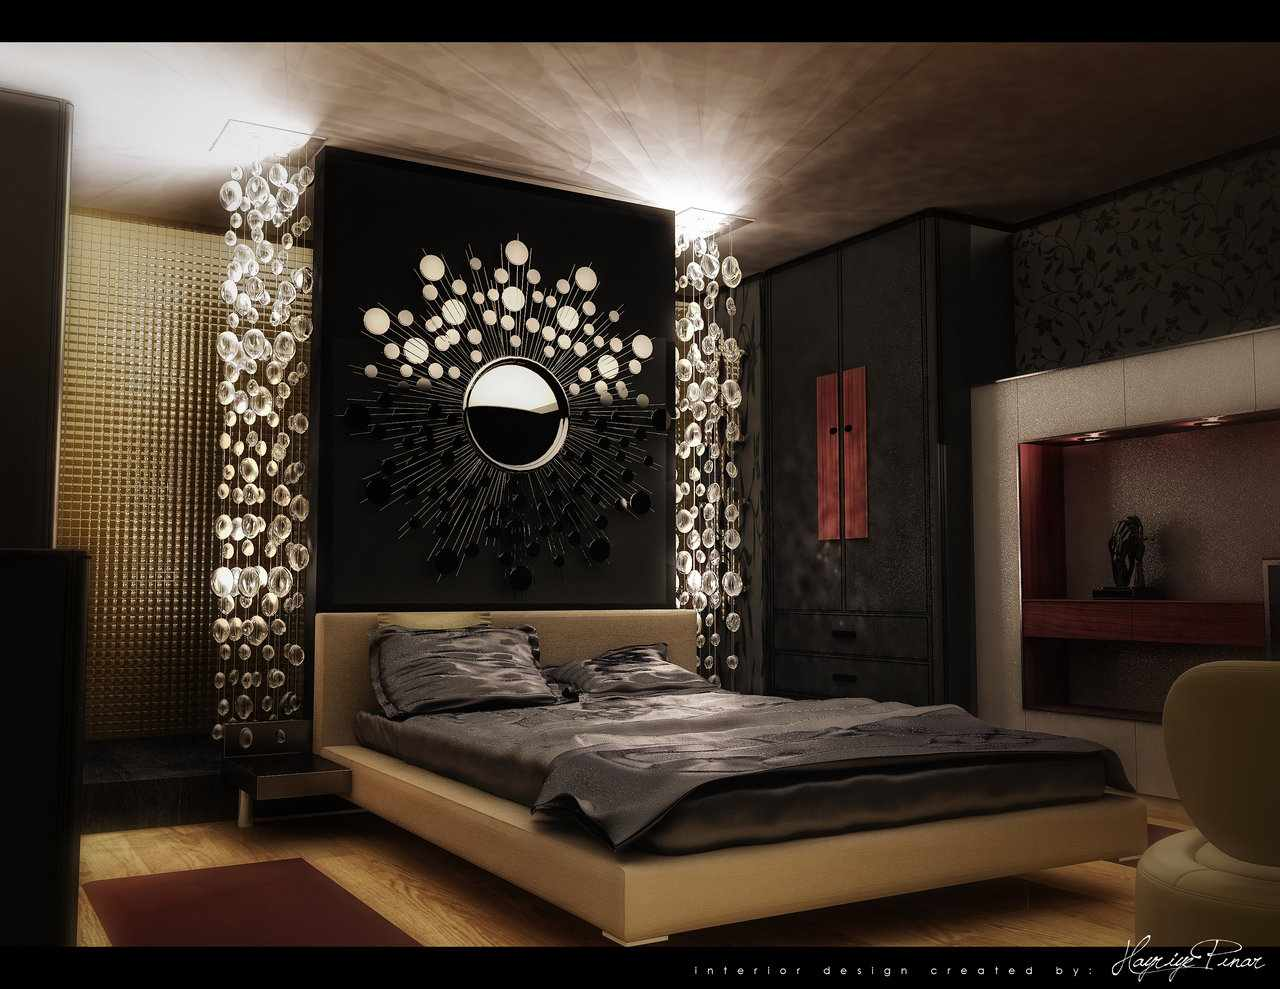 ikea Bedroom ideas  ikea Bedroom 2014 ideas  Exotic House Interior Designs